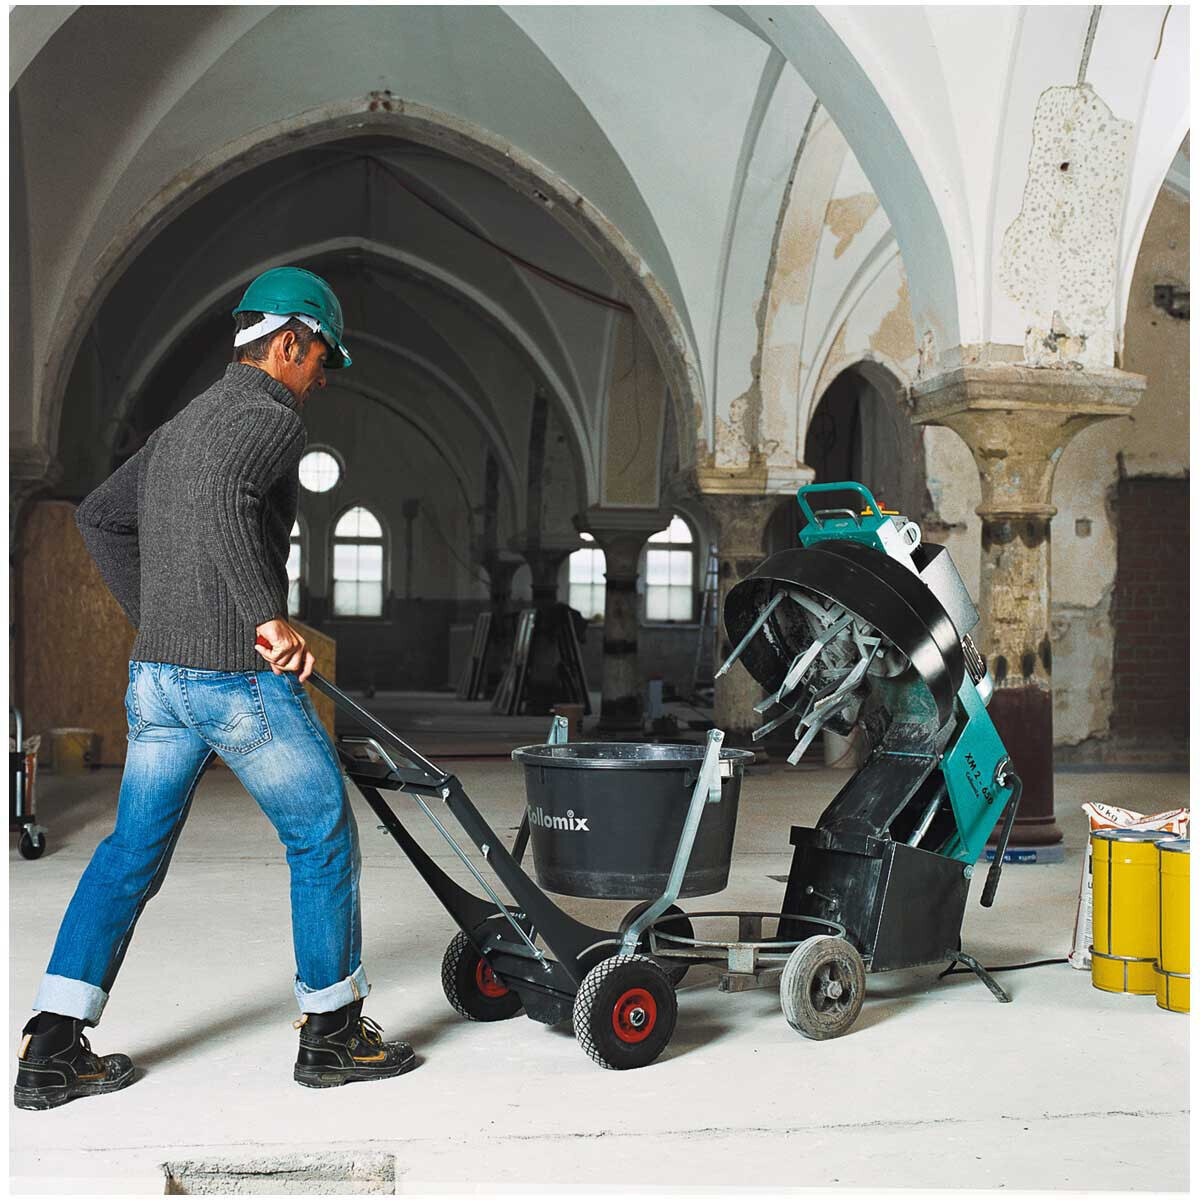 Collomix Bucket Cart for concrete, epoxy-based mortar, cement screed, grout, polymer-modified mortar, 2-component grouting compounds, self-leveling underlayments, concrete restoration toppings